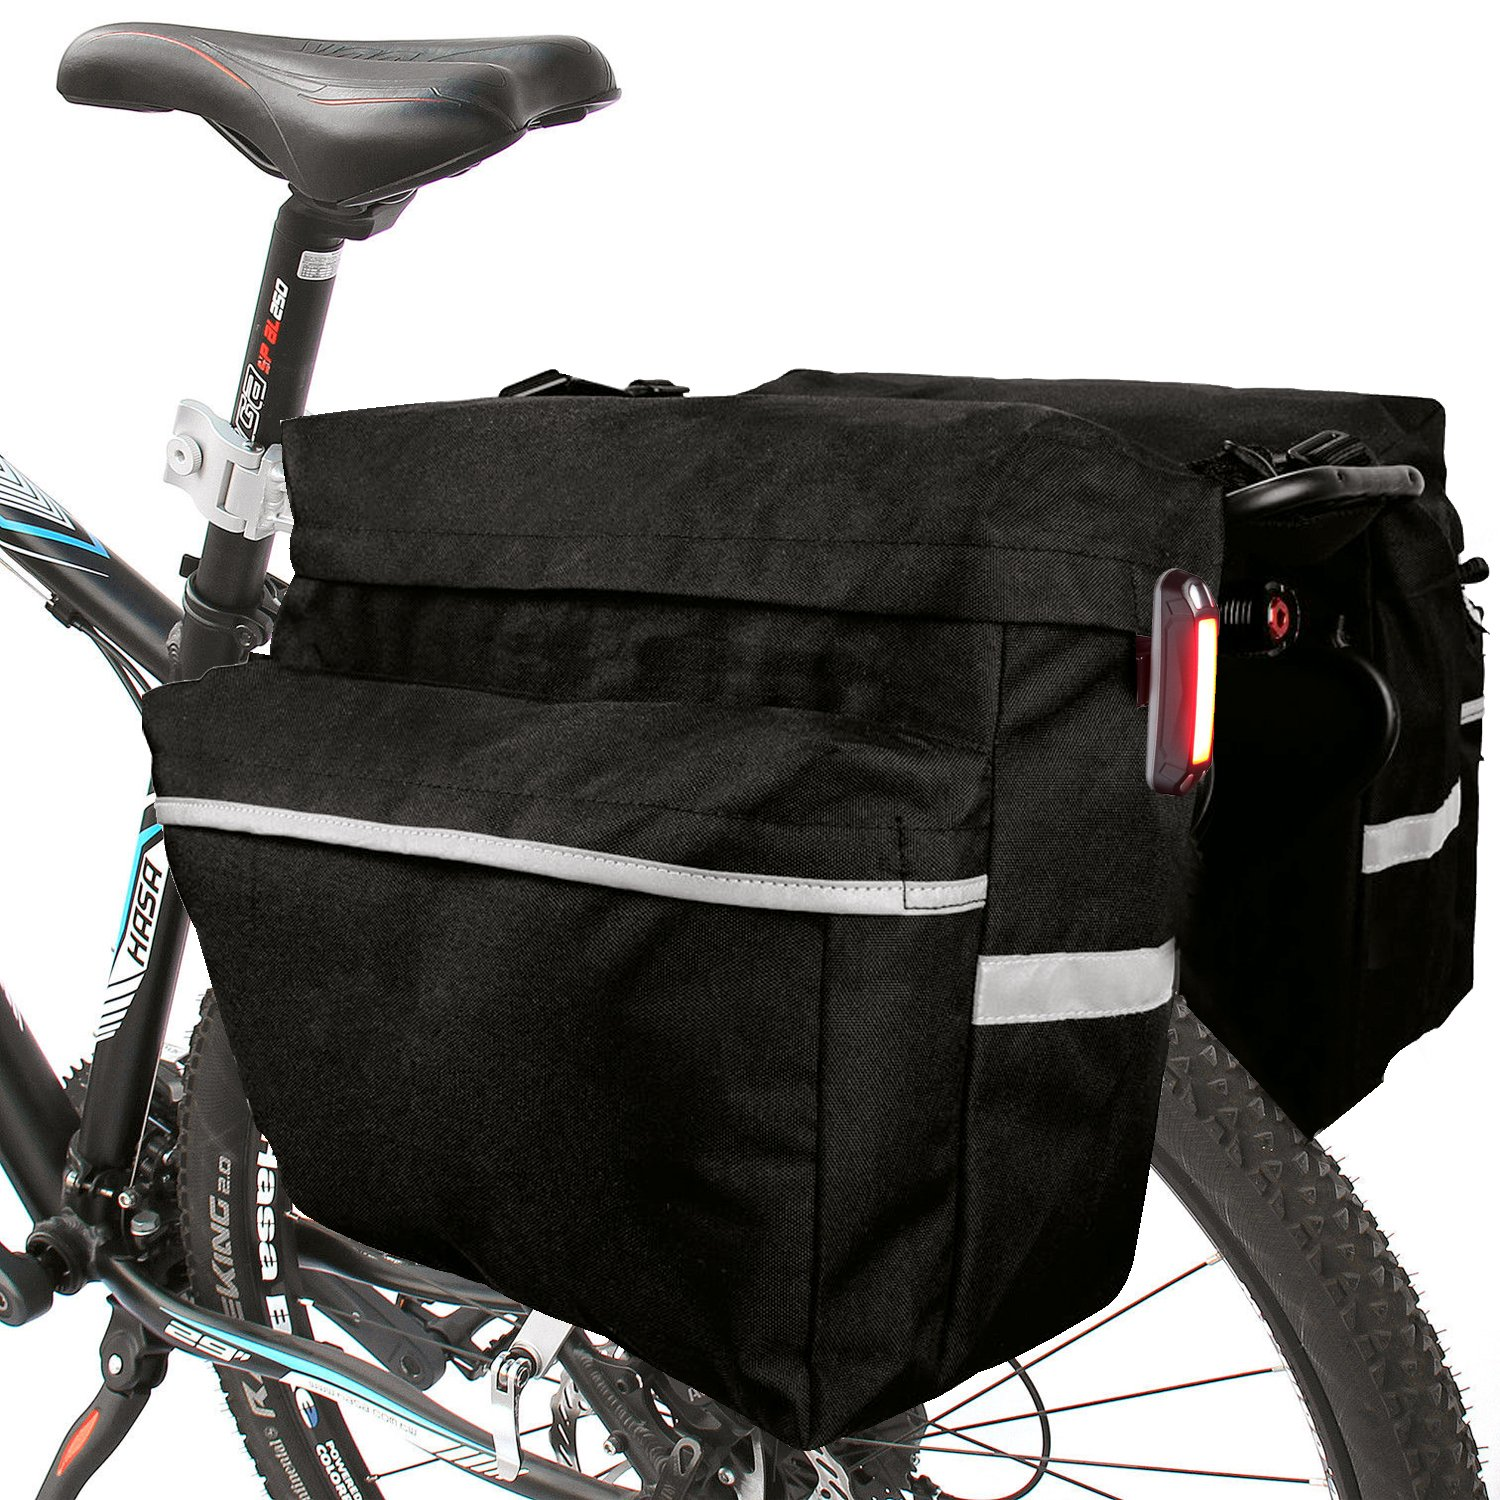 TRADERPLUS Bike Rear Seat Trunk Bag Bicycle Panniers with Adjustable Straps and 3M Reflective Trim for Mountain Cycling, Black